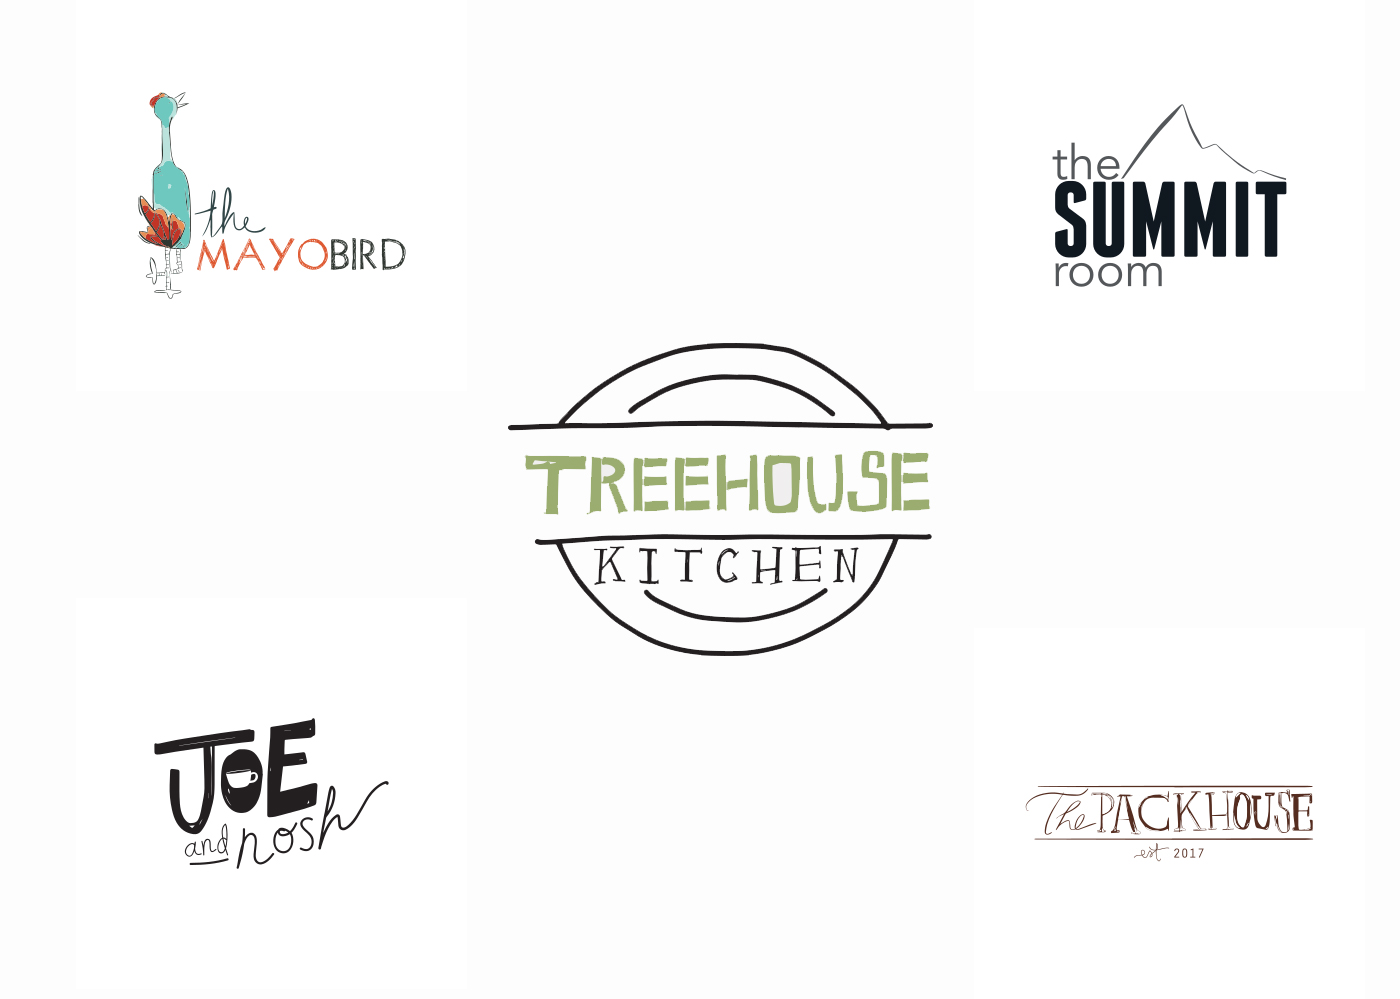 Tree House Kitchen Restaurants website designed by Bellaworks Web Design